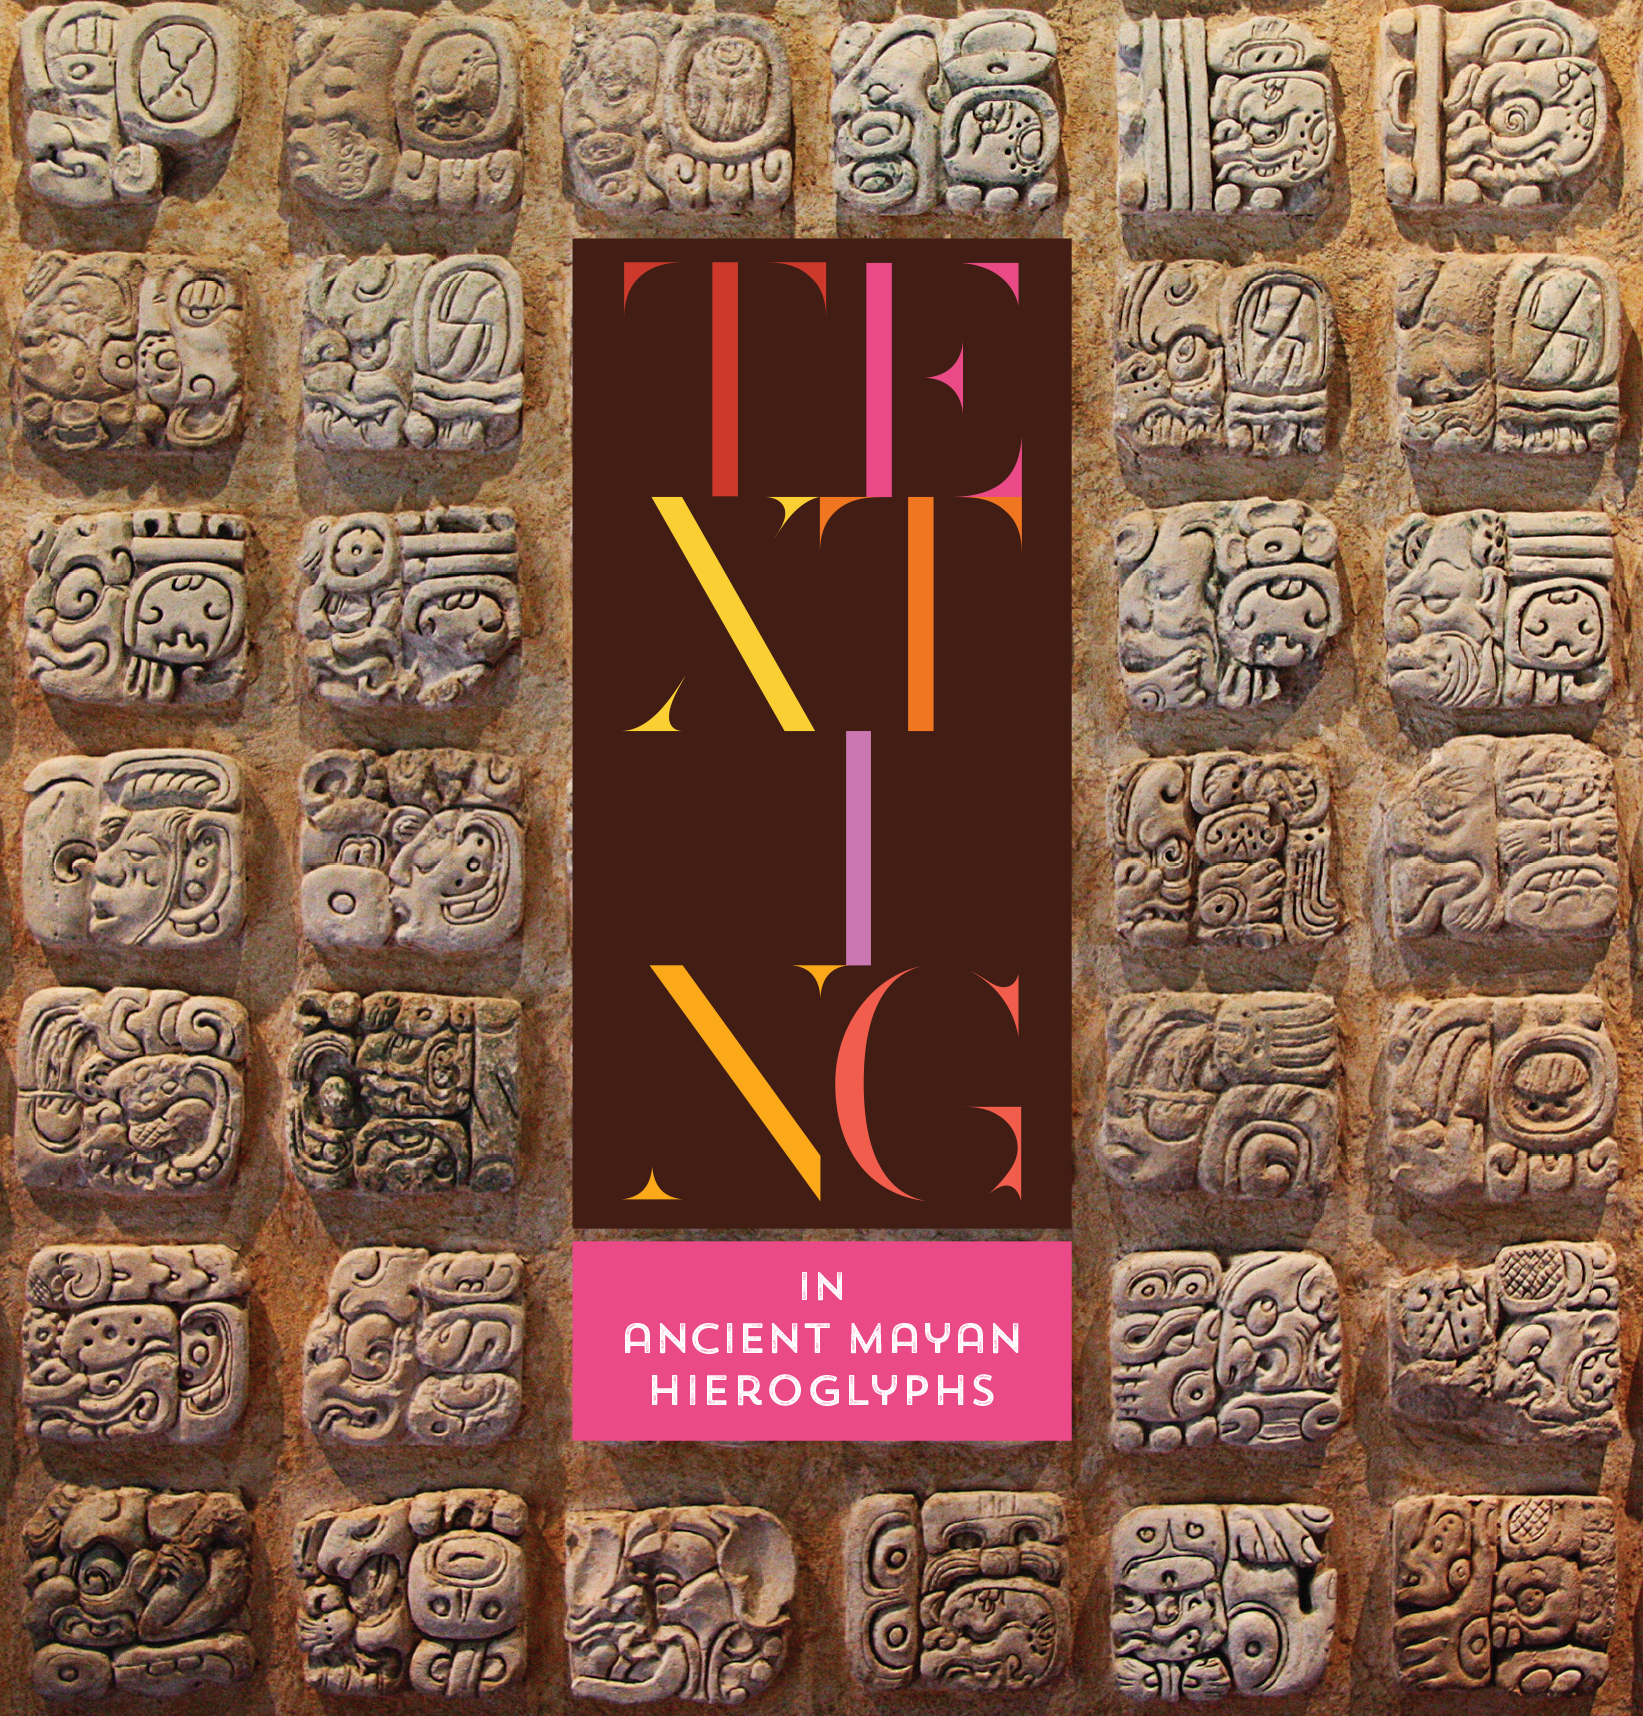 Texting In Ancient Mayan Hieroglyphs National Endowment For The